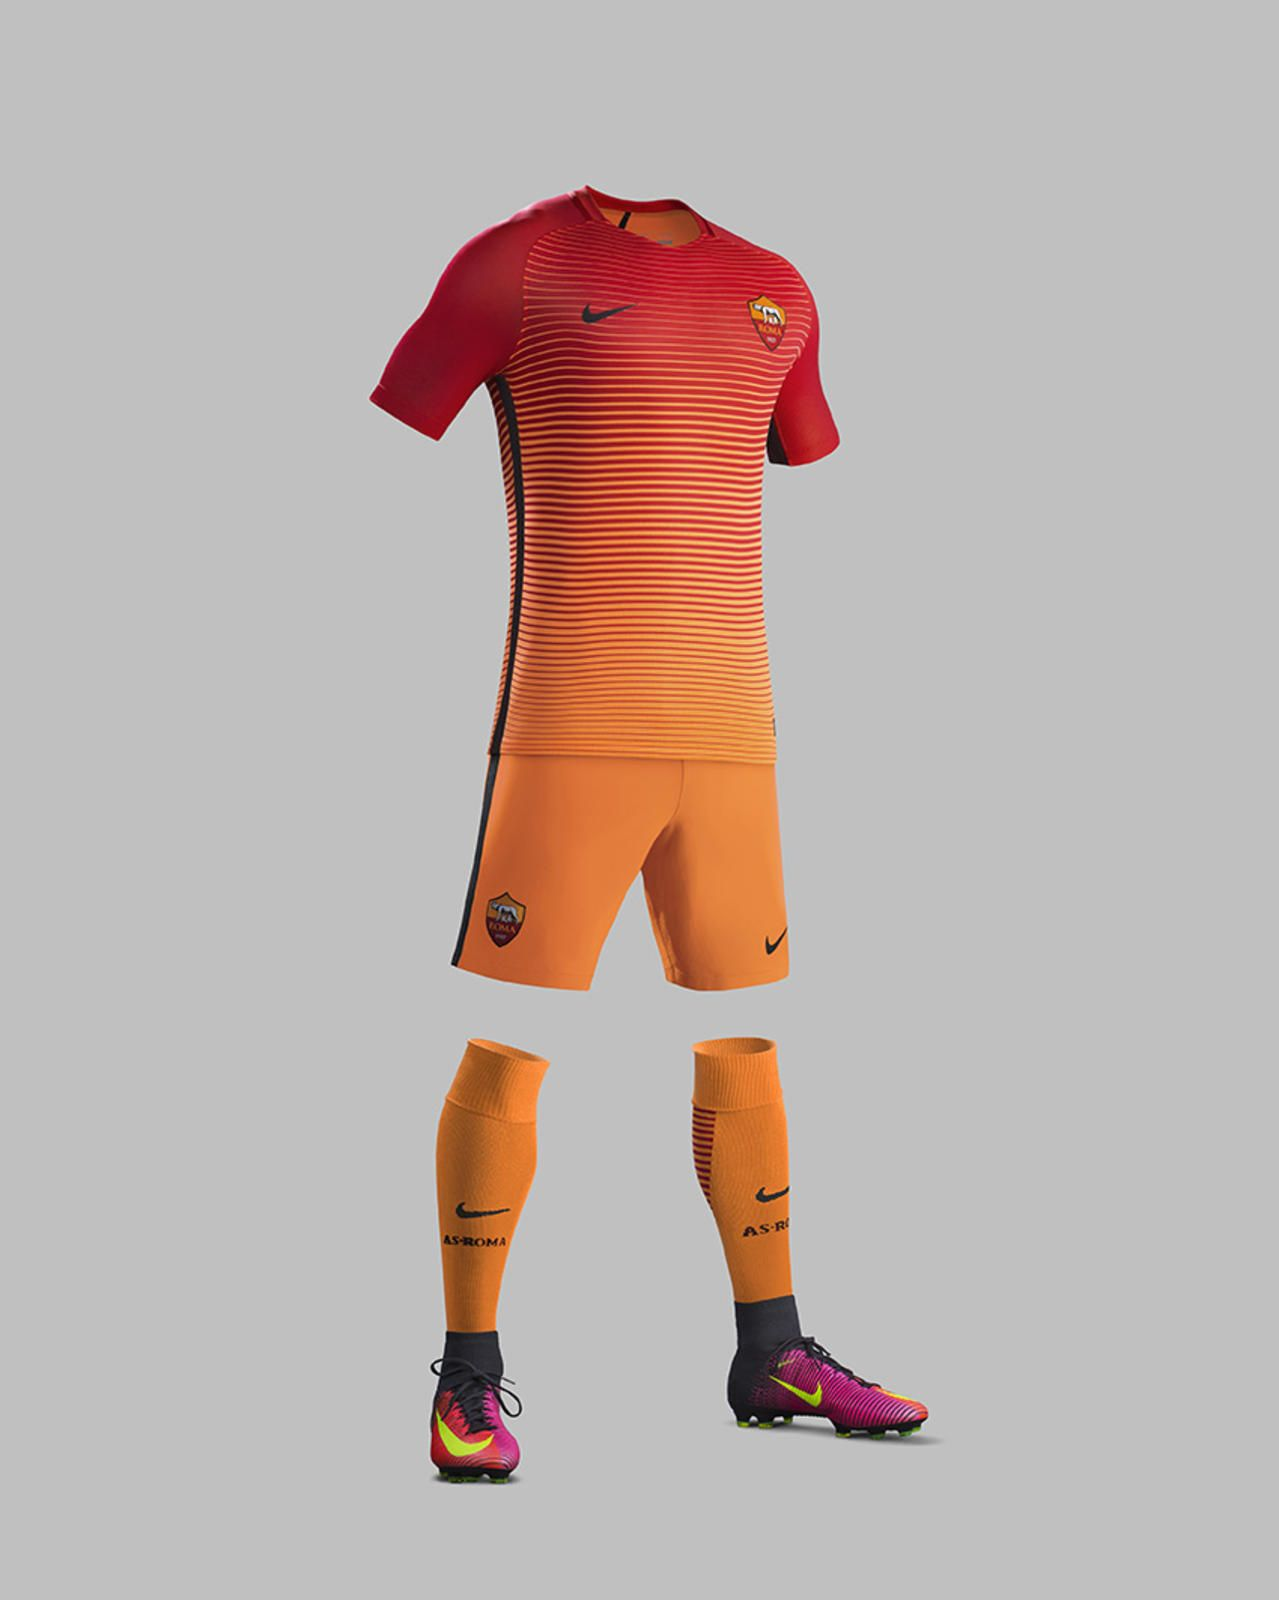 5df265864c Terceira camisa da AS Roma 2016-2017 Nike kit